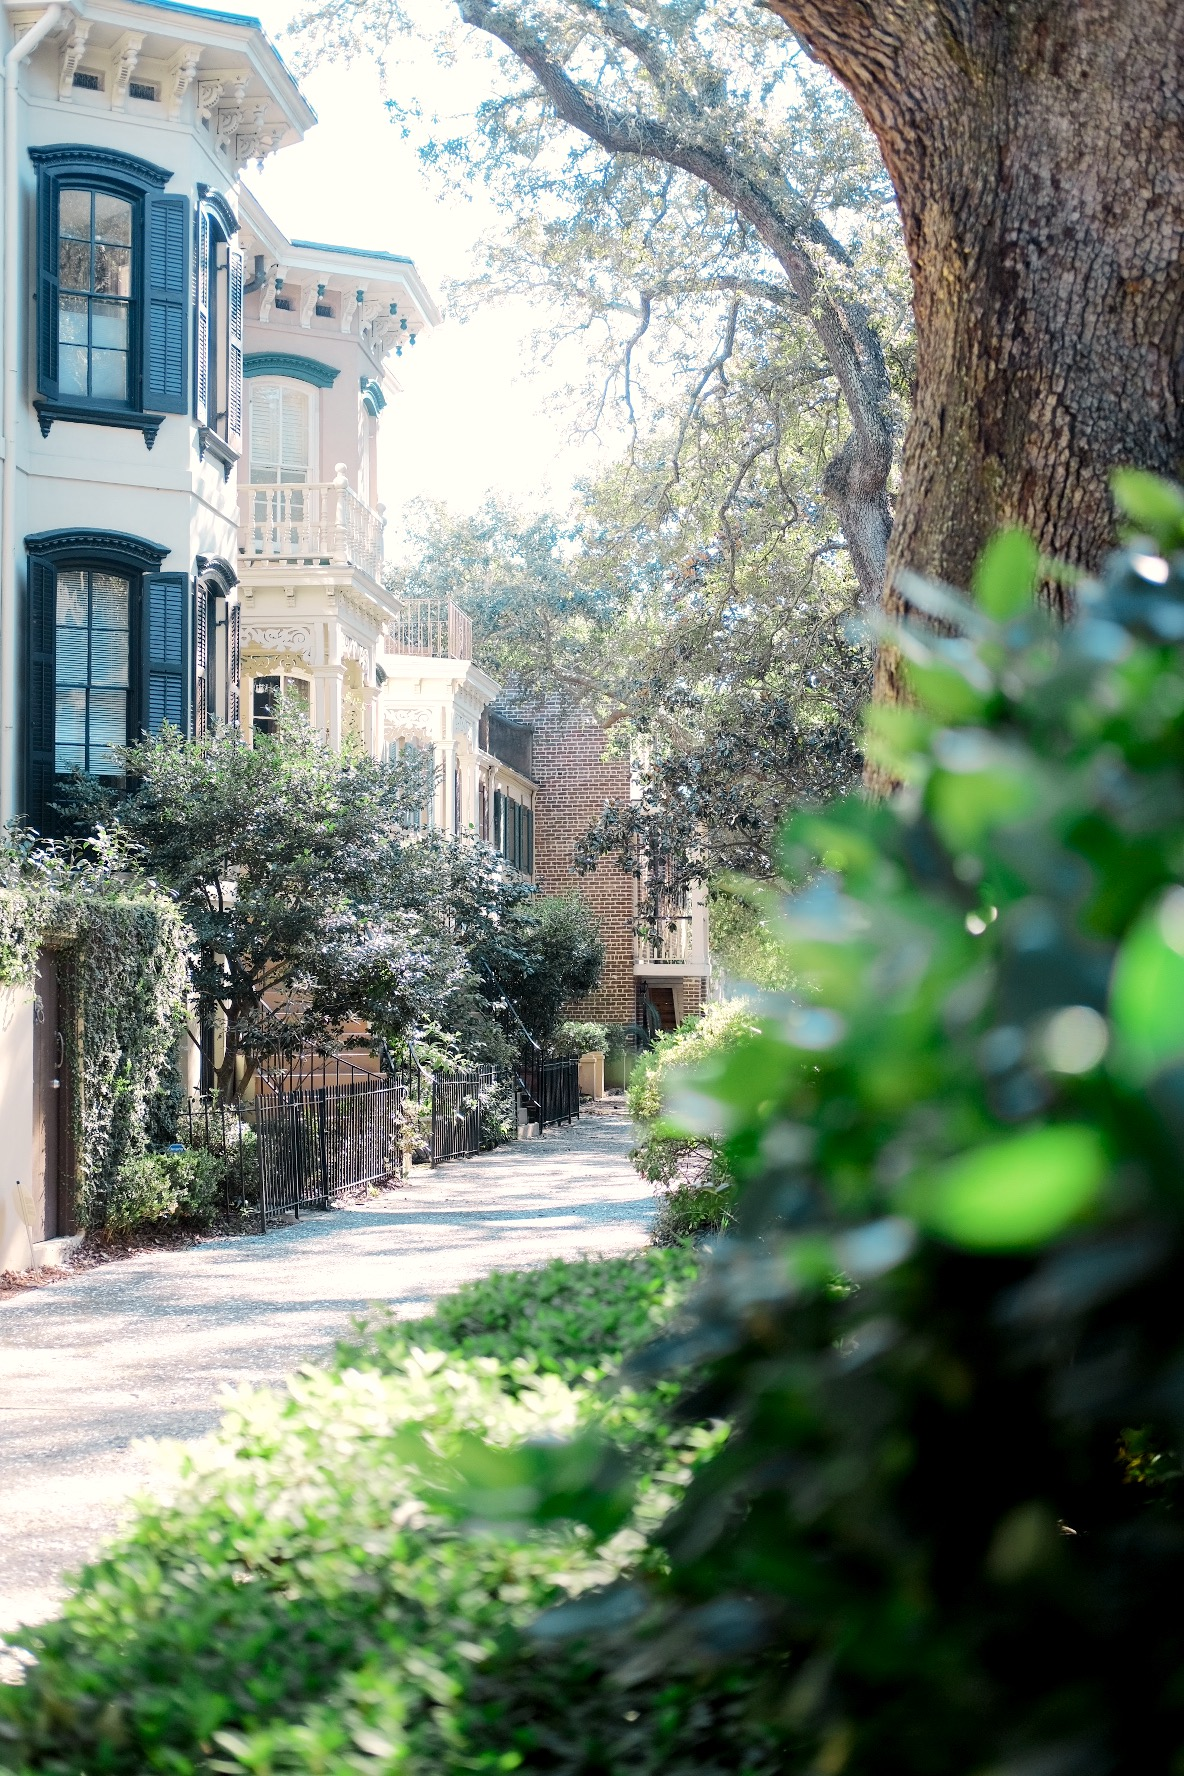 An Autumn Front Porch in Savannah | Genteel & Bard Fine Savannah Walking Tours